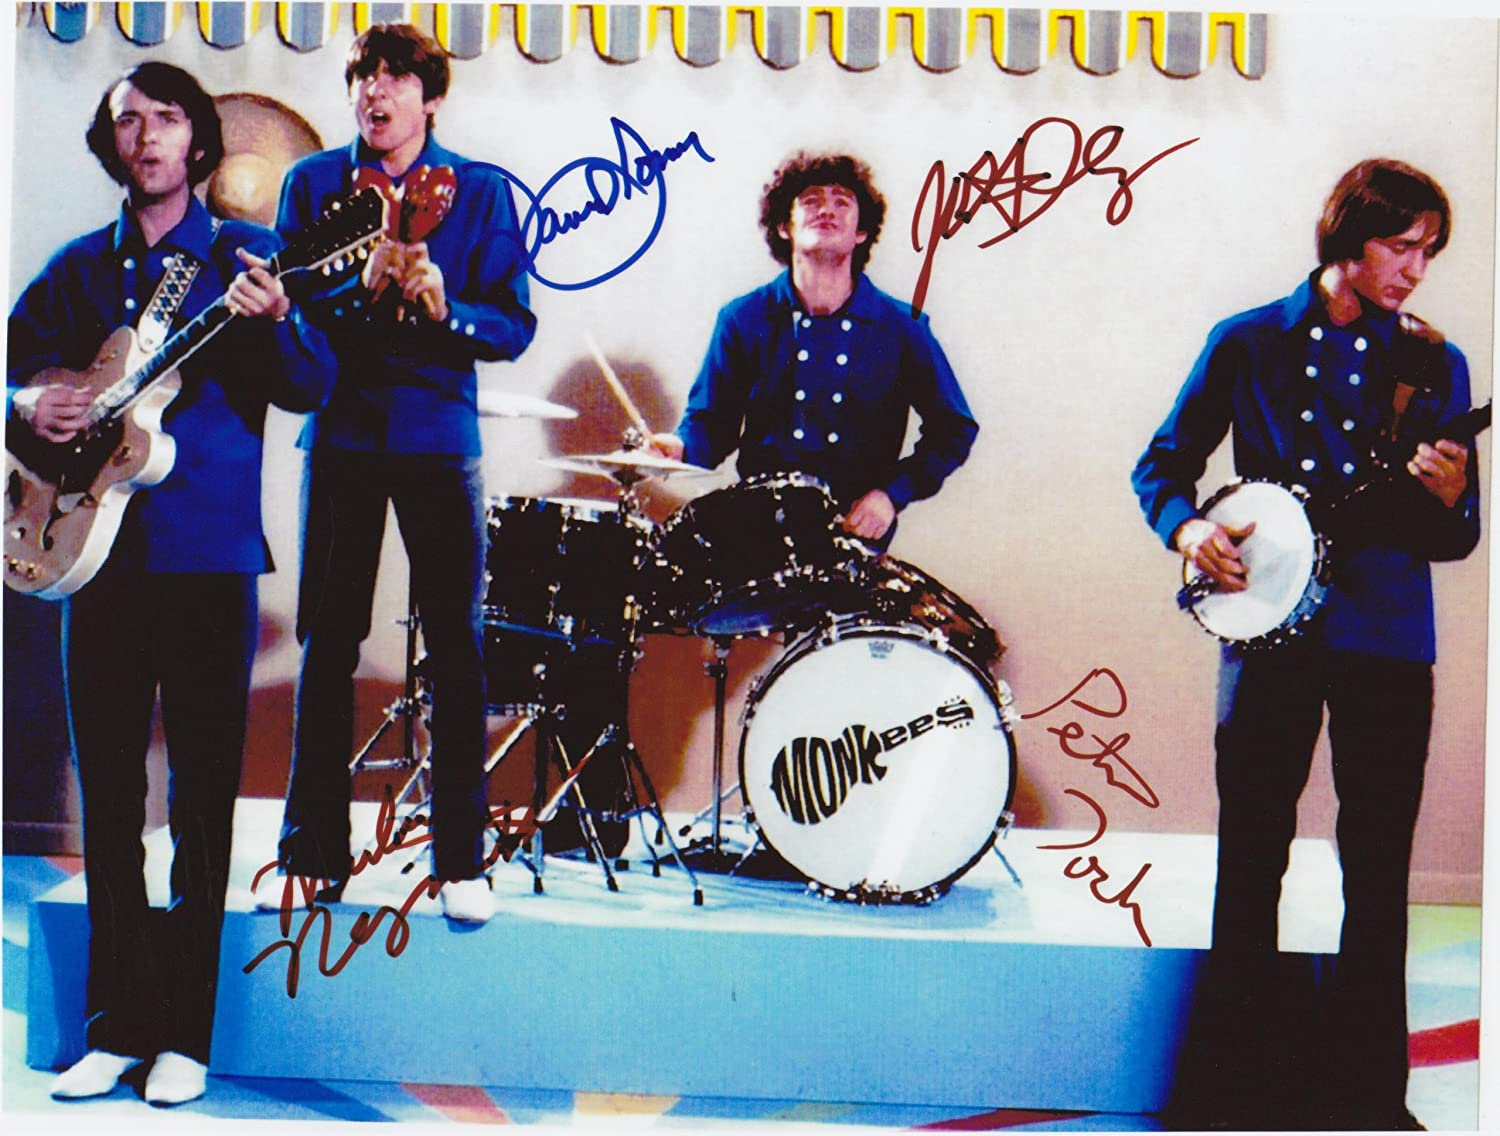 The Monkees 8 X 10 Photo Autograph on Glossy Photo Paper